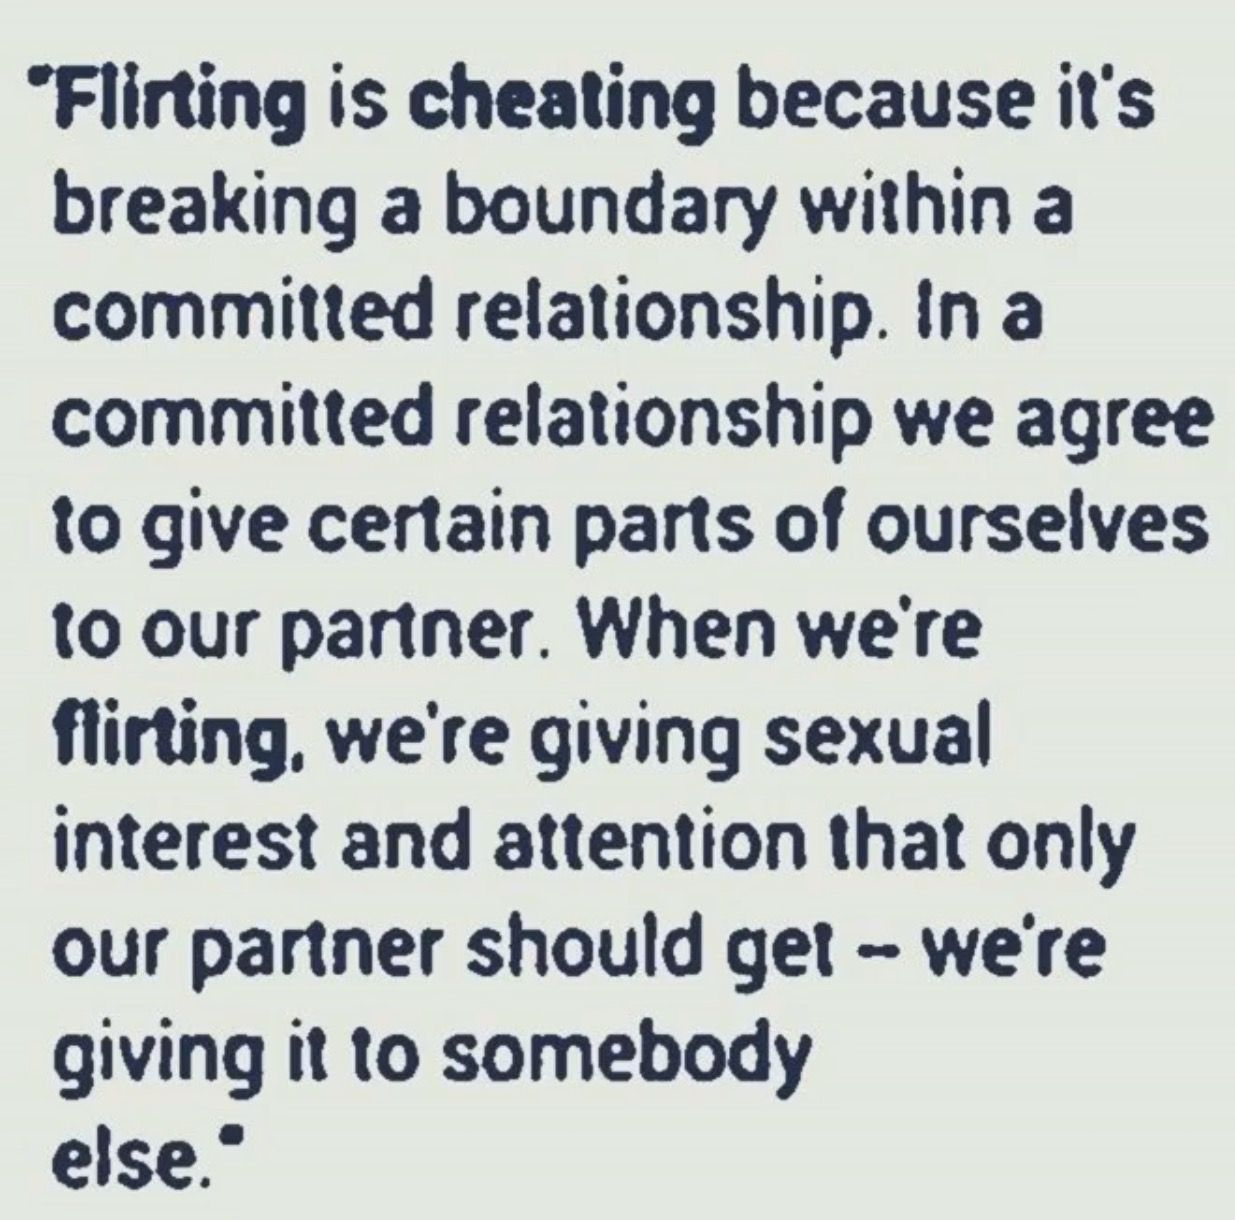 flirting vs cheating committed relationships quotes pictures for a